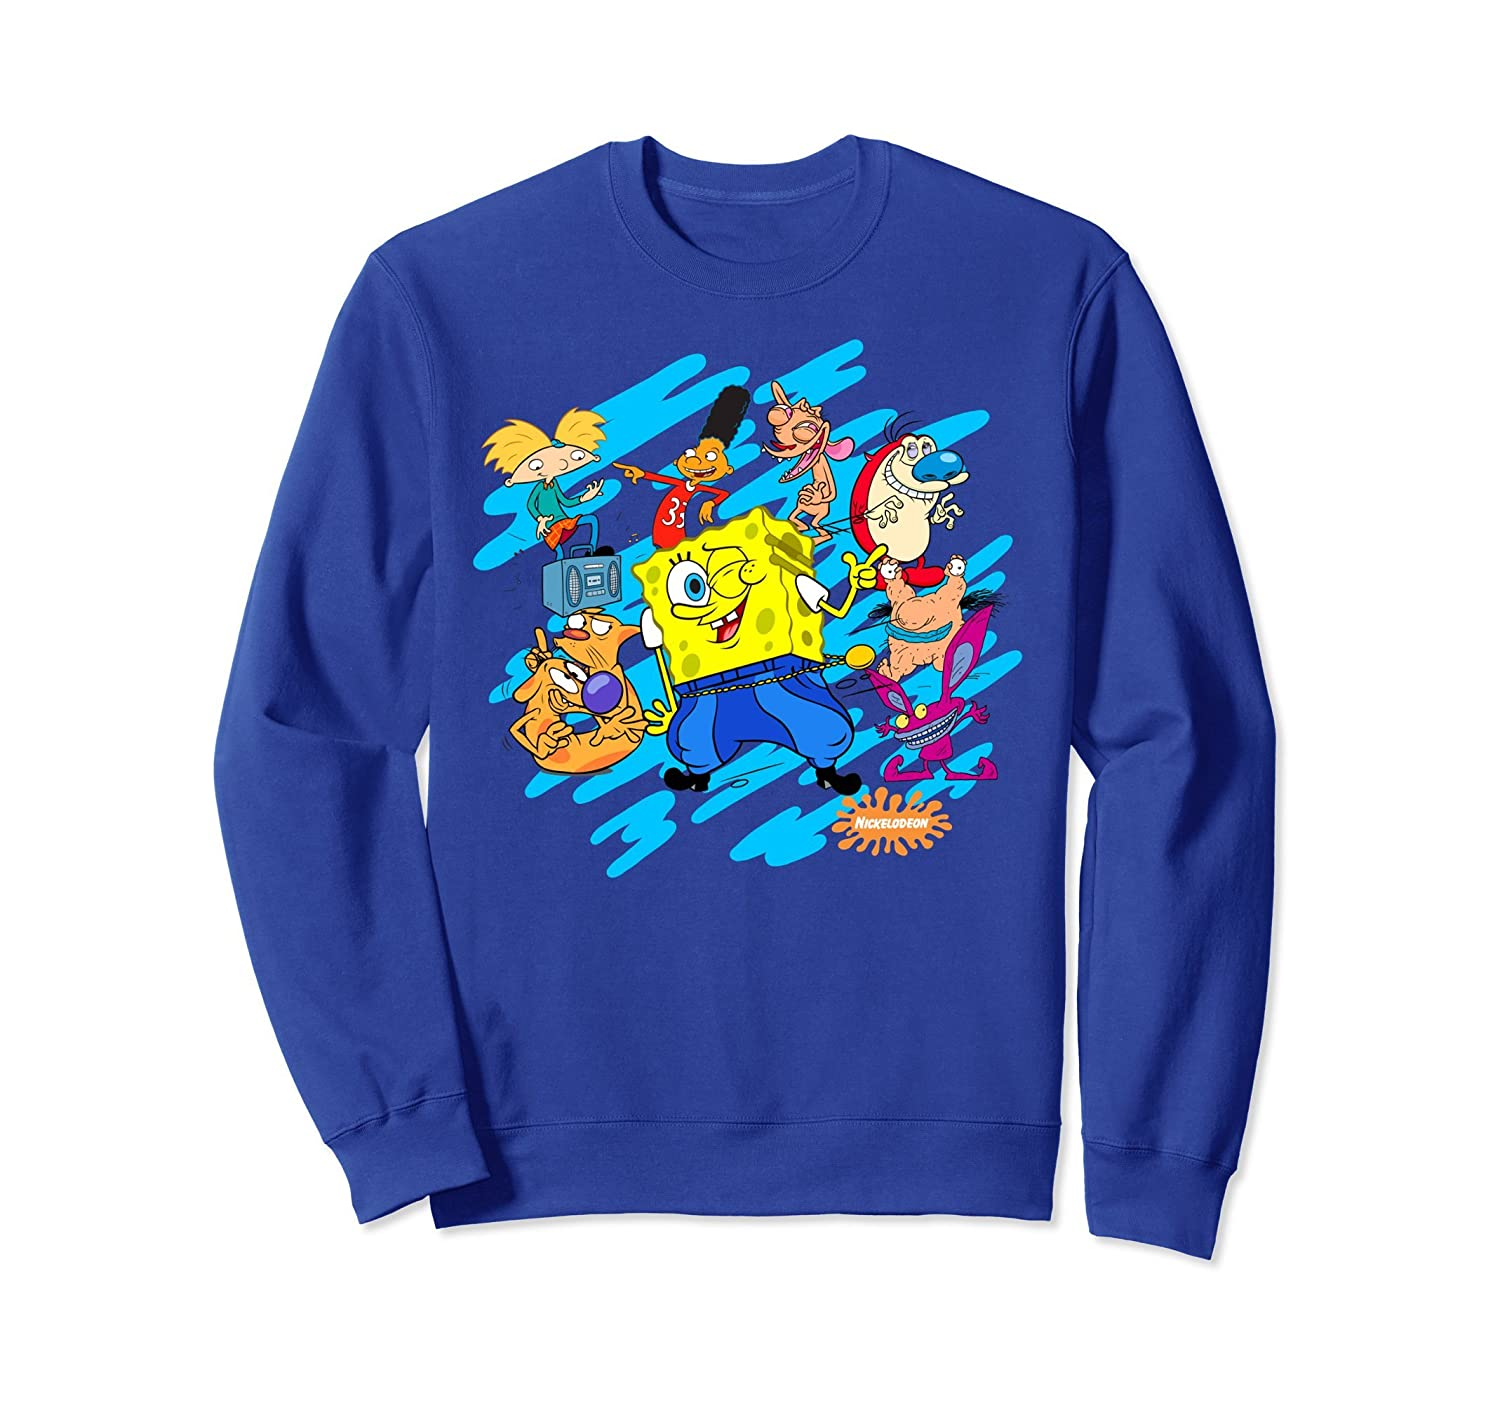 Nickelodeon block party Spongebob Sweatshirt-alottee gift